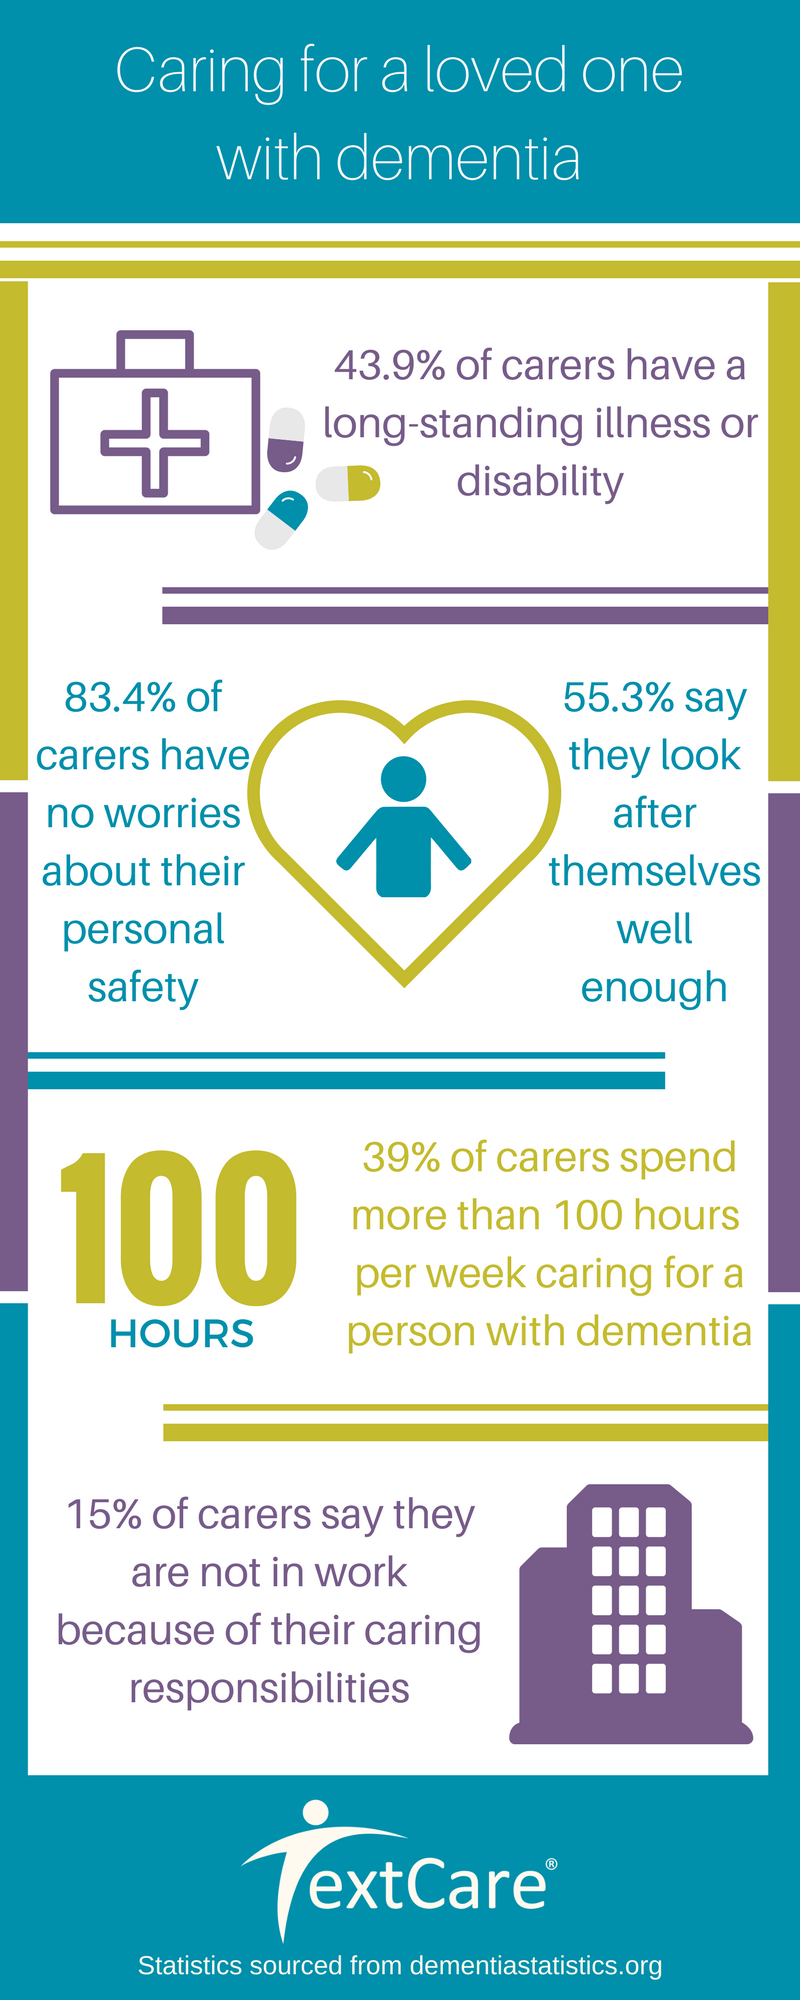 Caring for a loved one with dementia statistics infographic